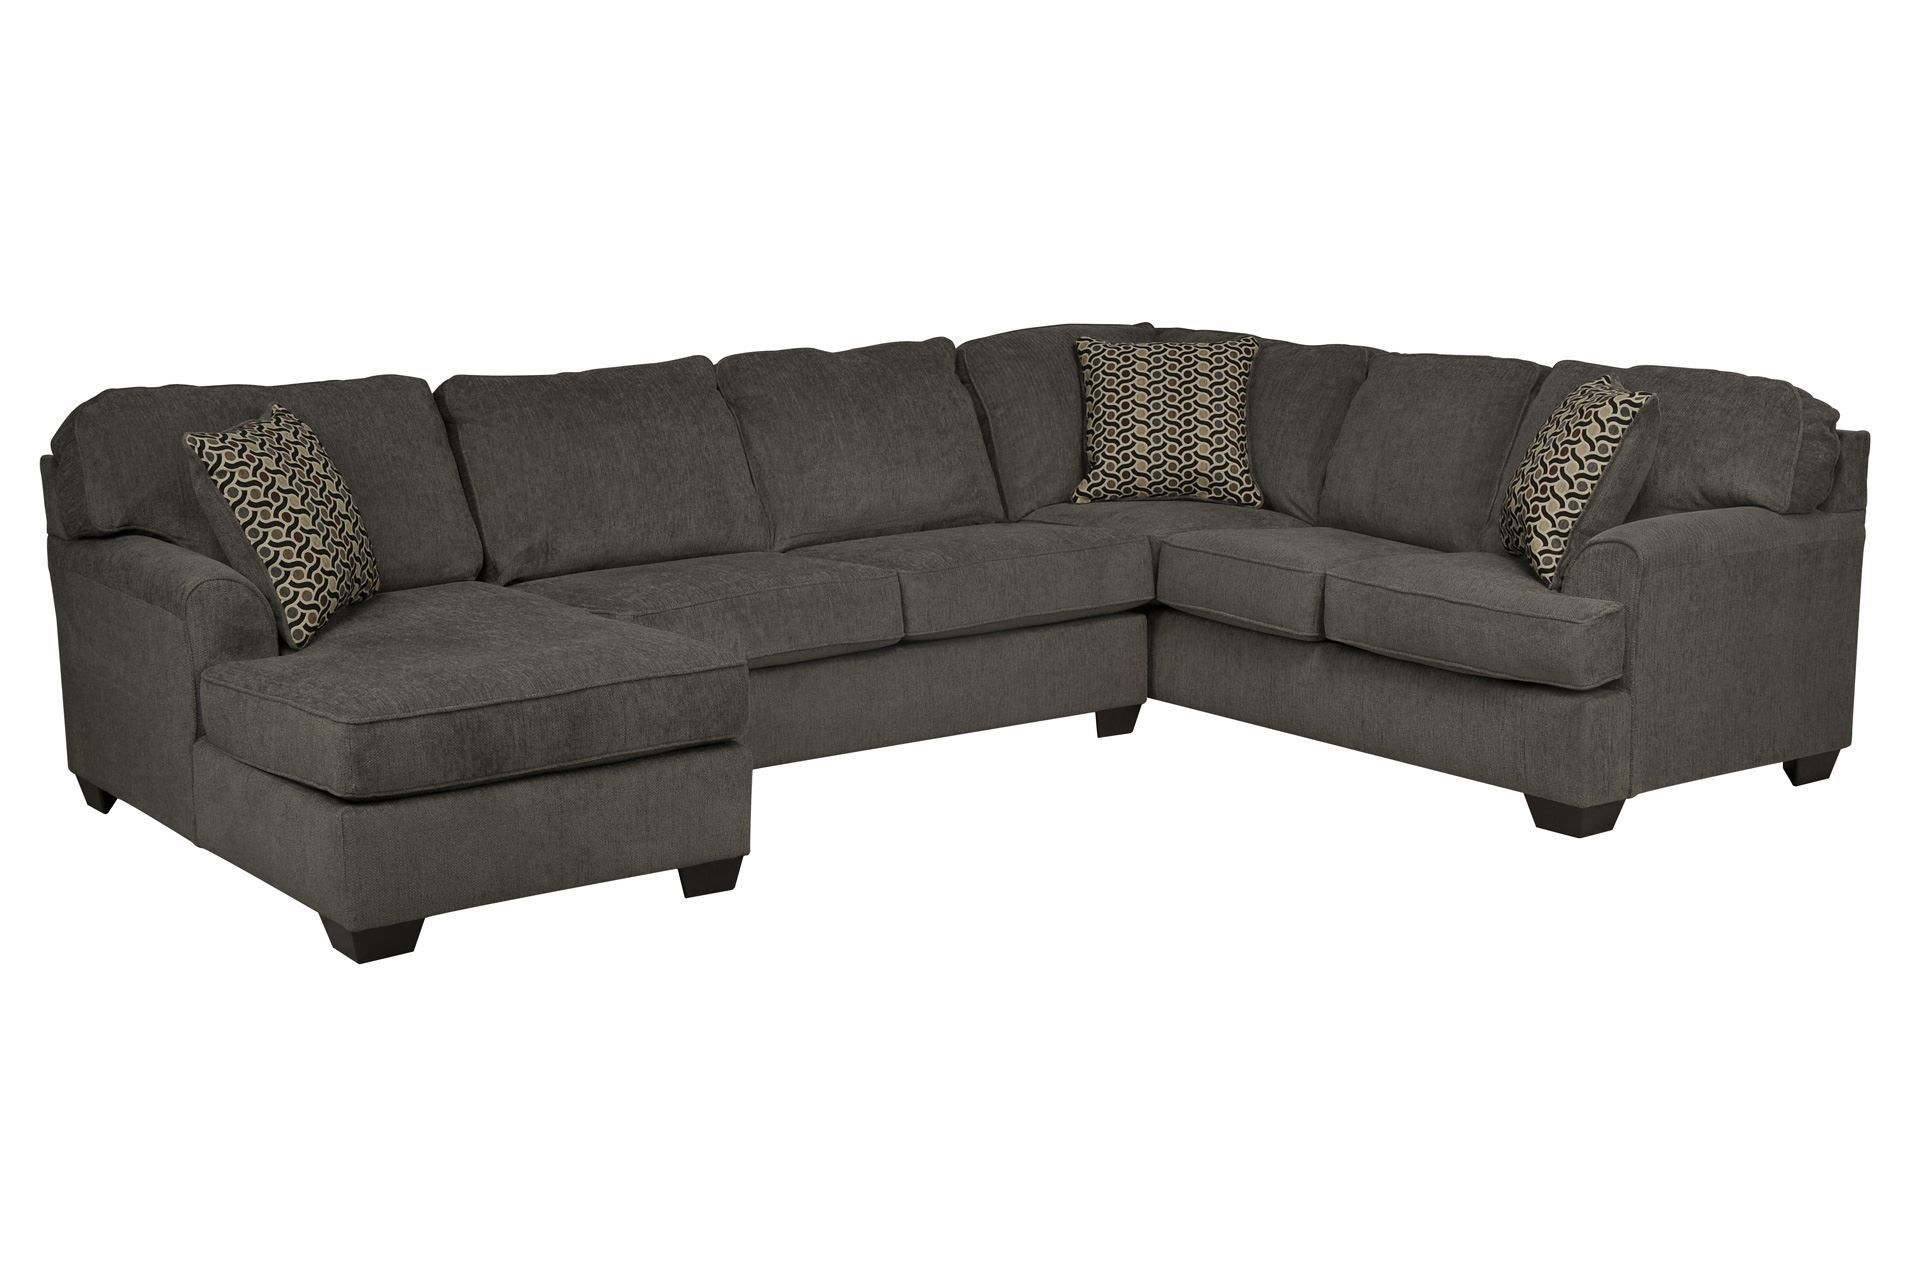 Belleview Taupe 2 Piece Sectional